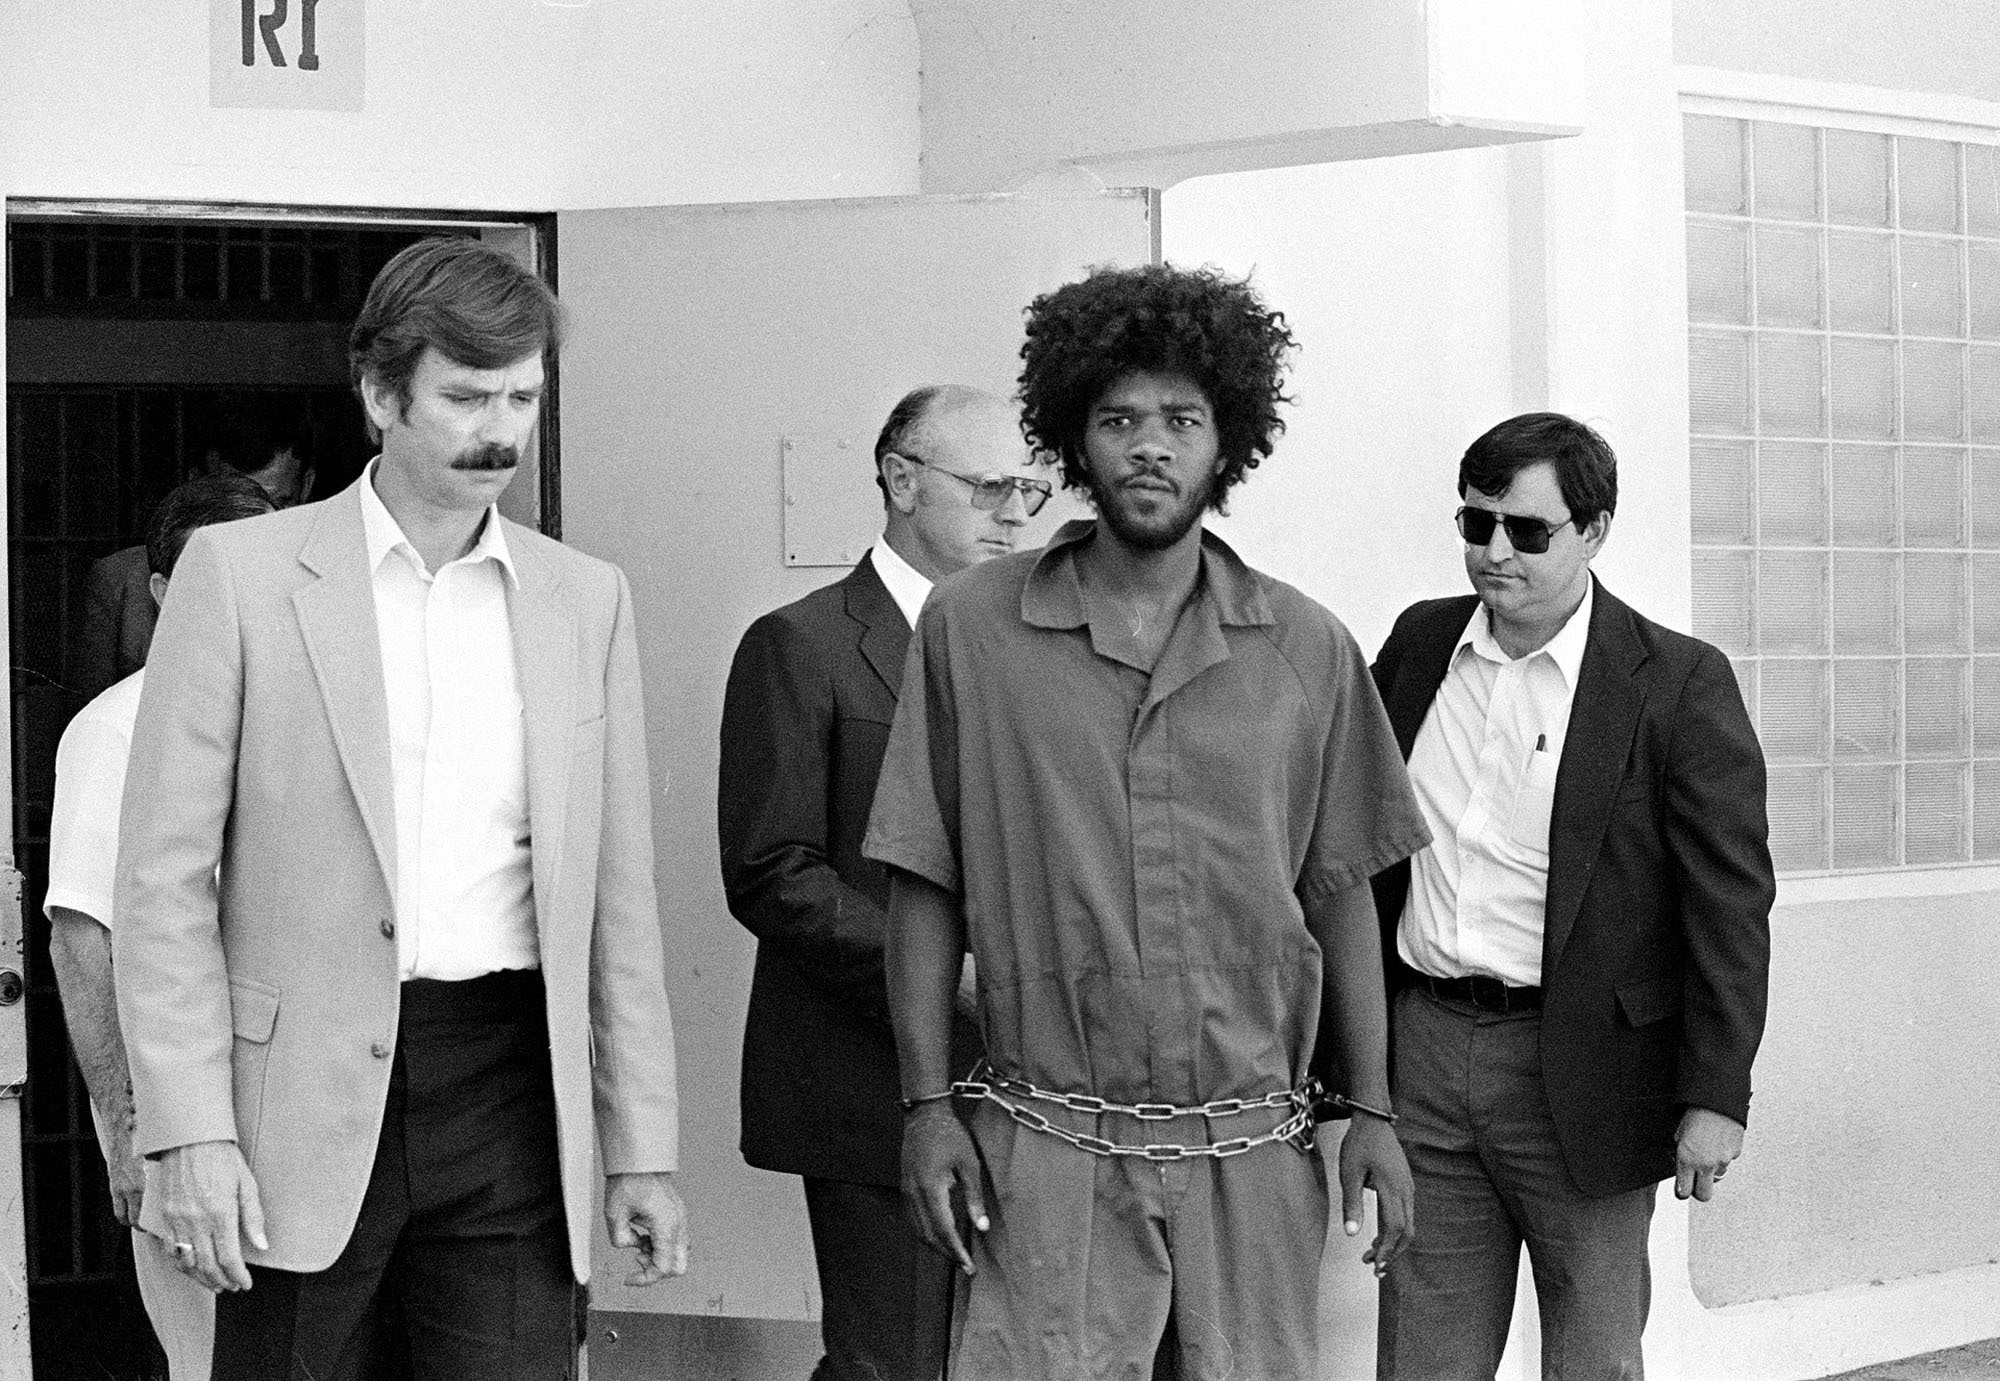 In this July 31, 1983, file photo, Kevin Cooper, center, a suspect in connection with the slashing death of four people in Chino, Calif., is escorted to a car for transport to San Bernardino from Santa Barbara, Calif., after he was arrested by police at Santa Cruz Island. (AP Photo/File)